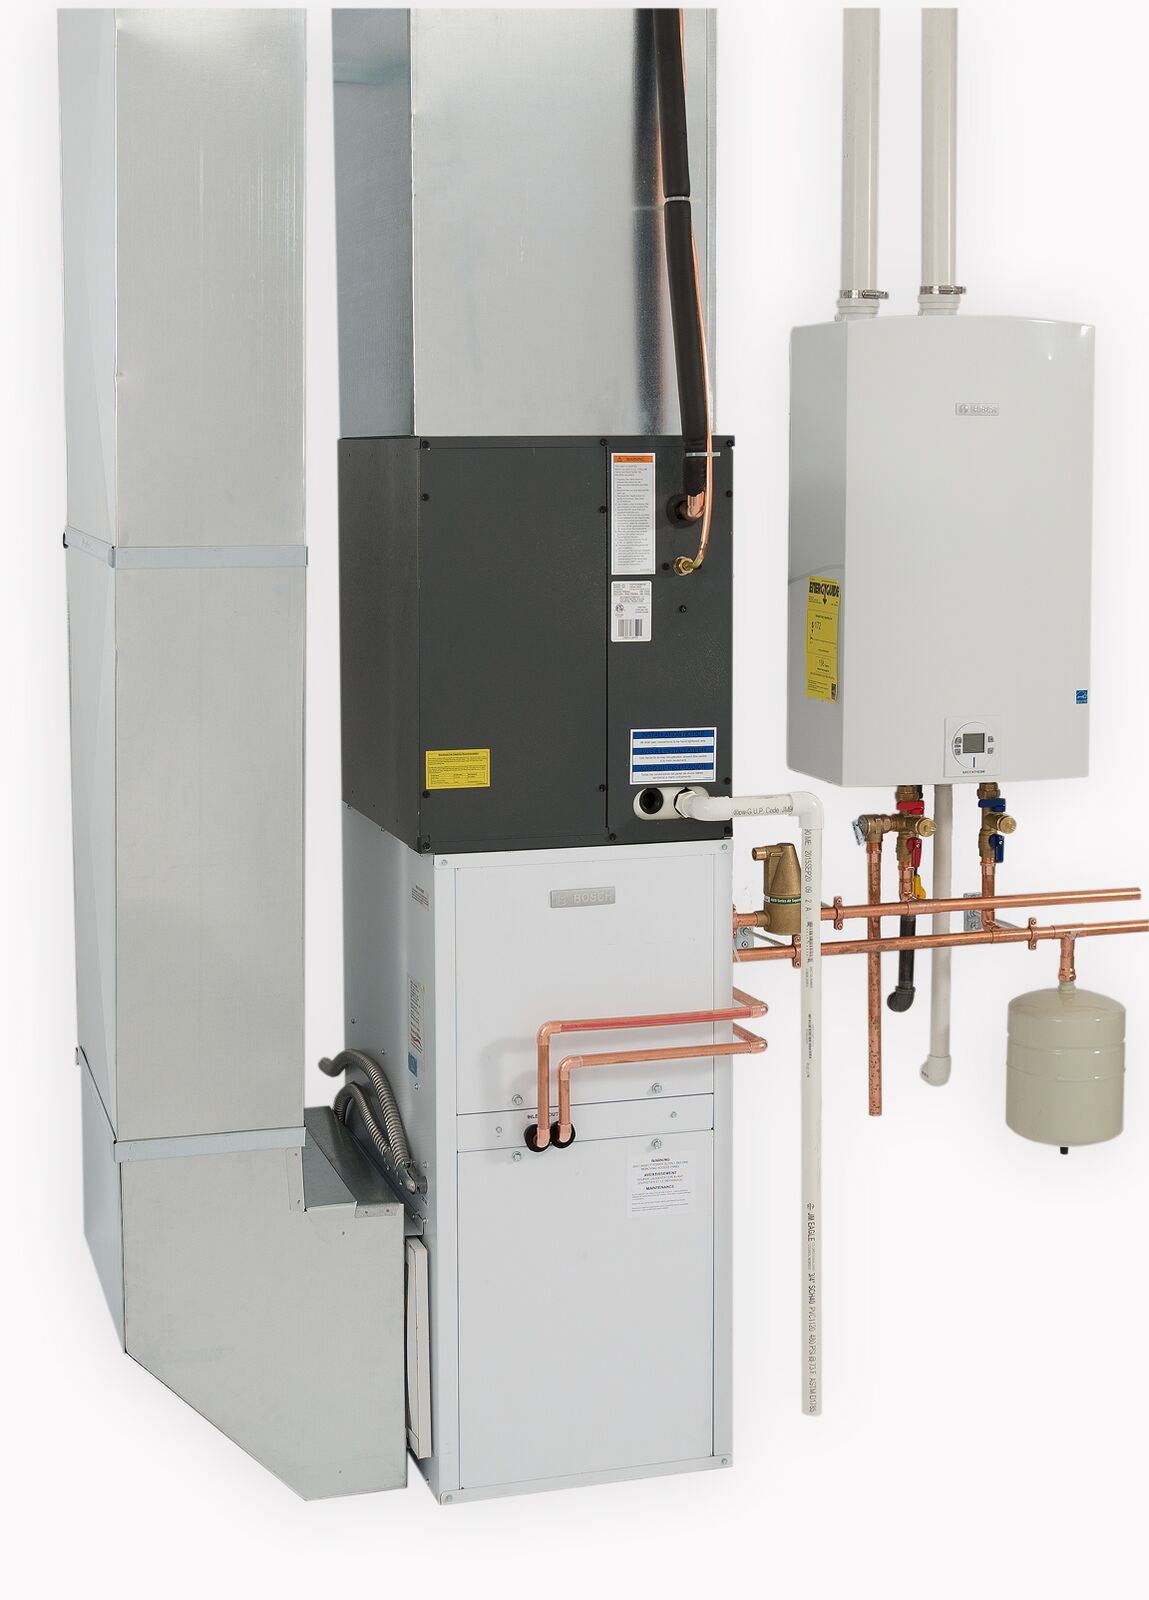 Air Handler Draws Warmth From Tankless Water Heater